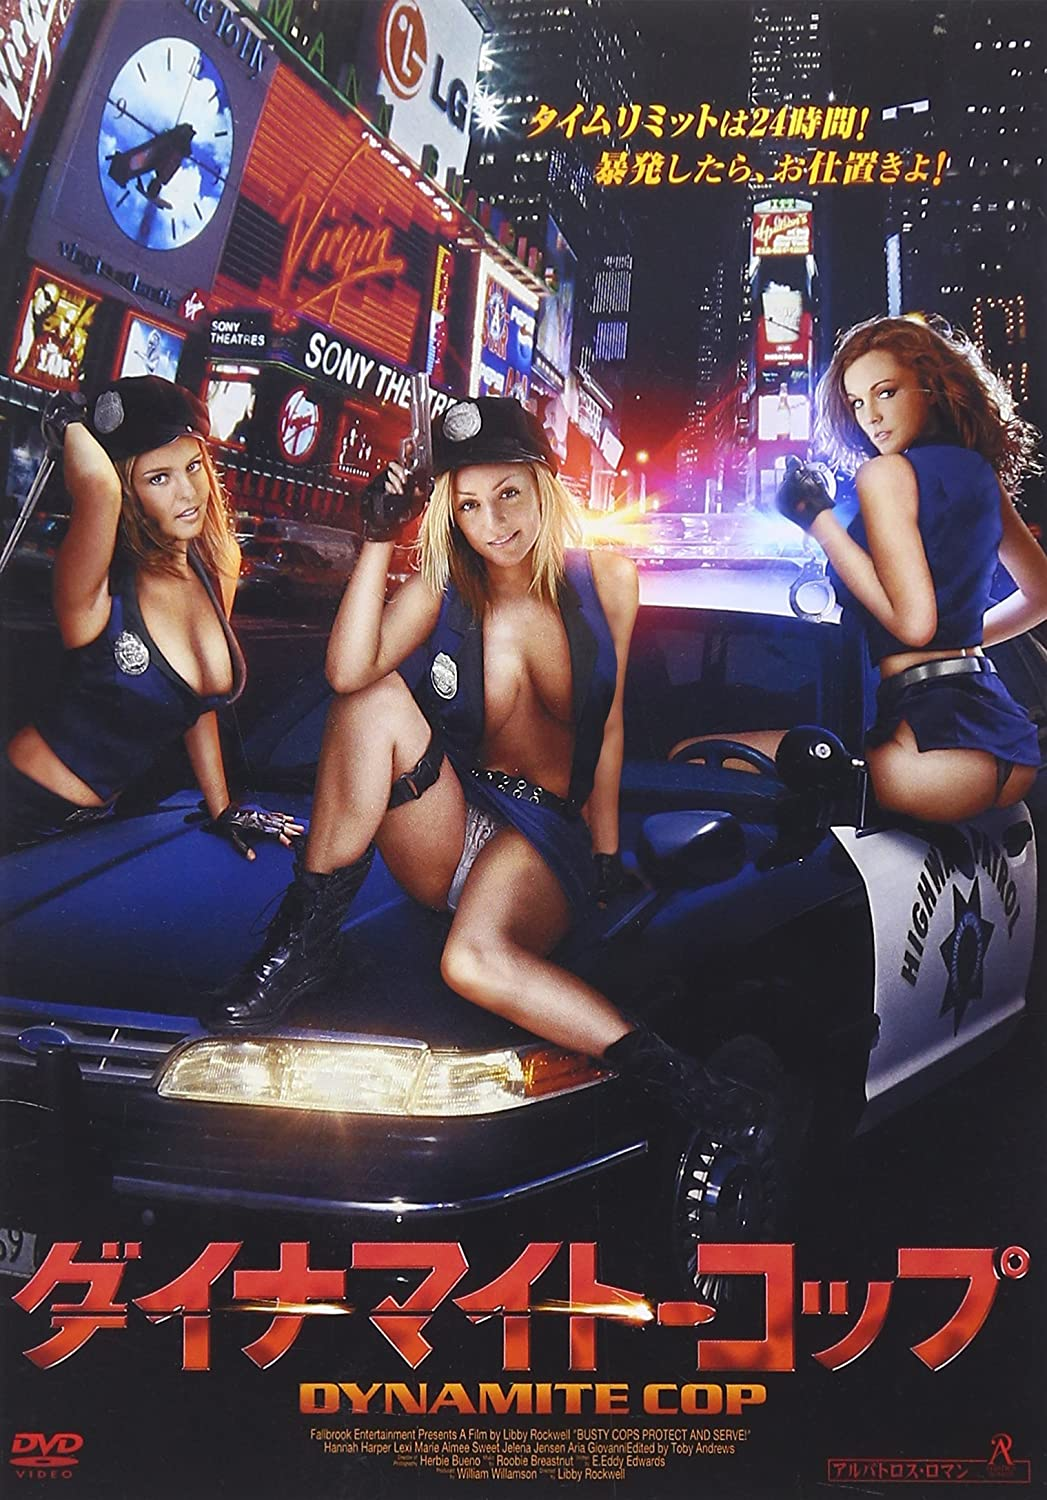 Busty cop movie series